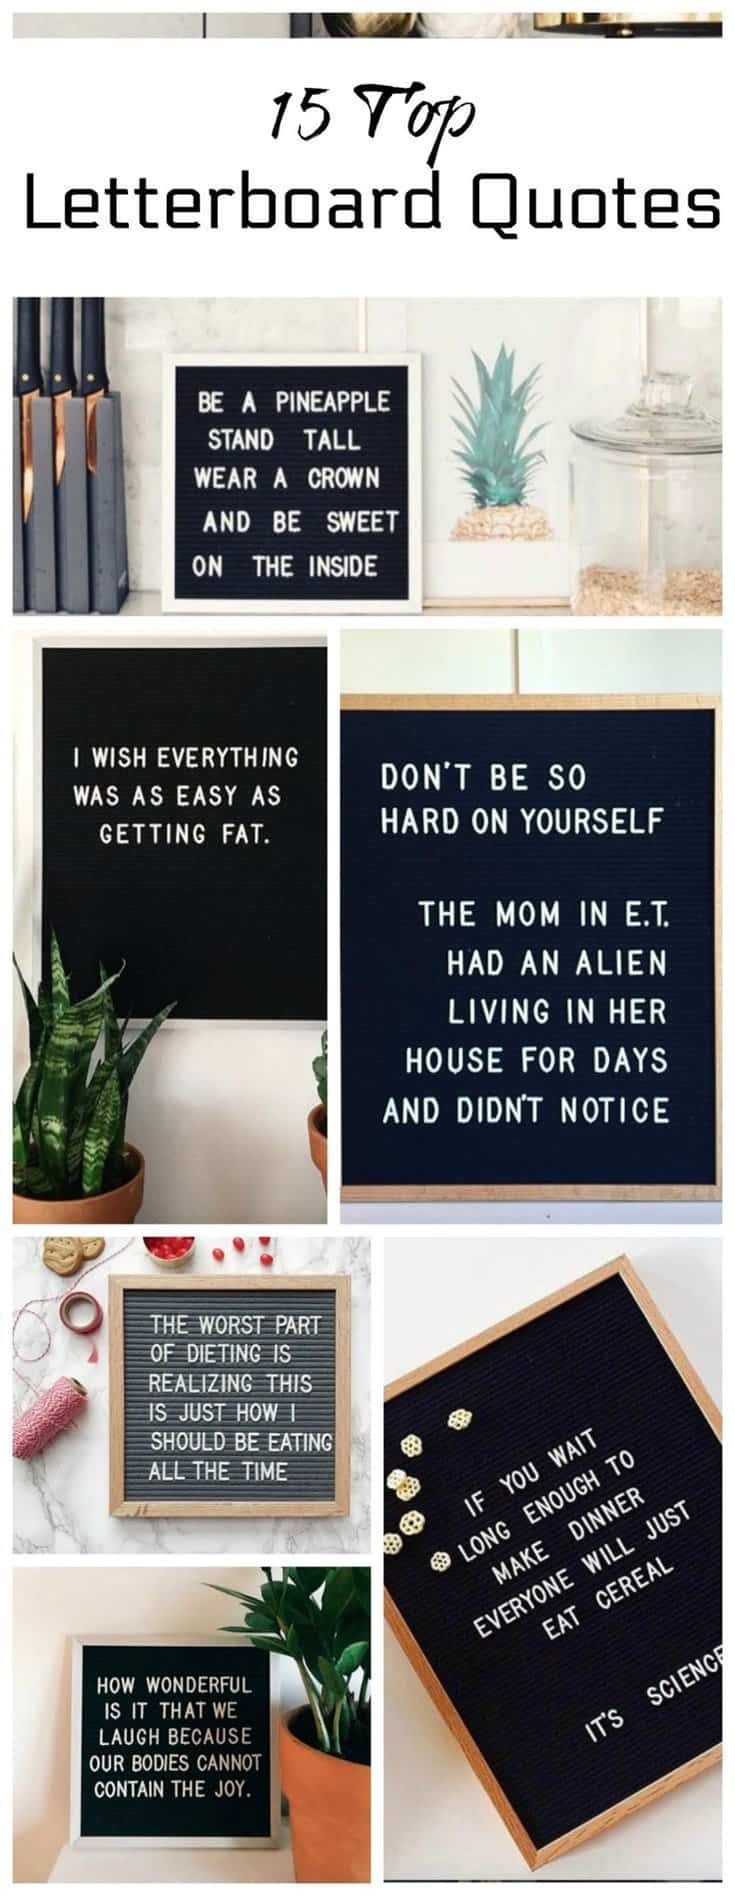 38 Funny Inspirational Quotes To Motivate You Every Day 032